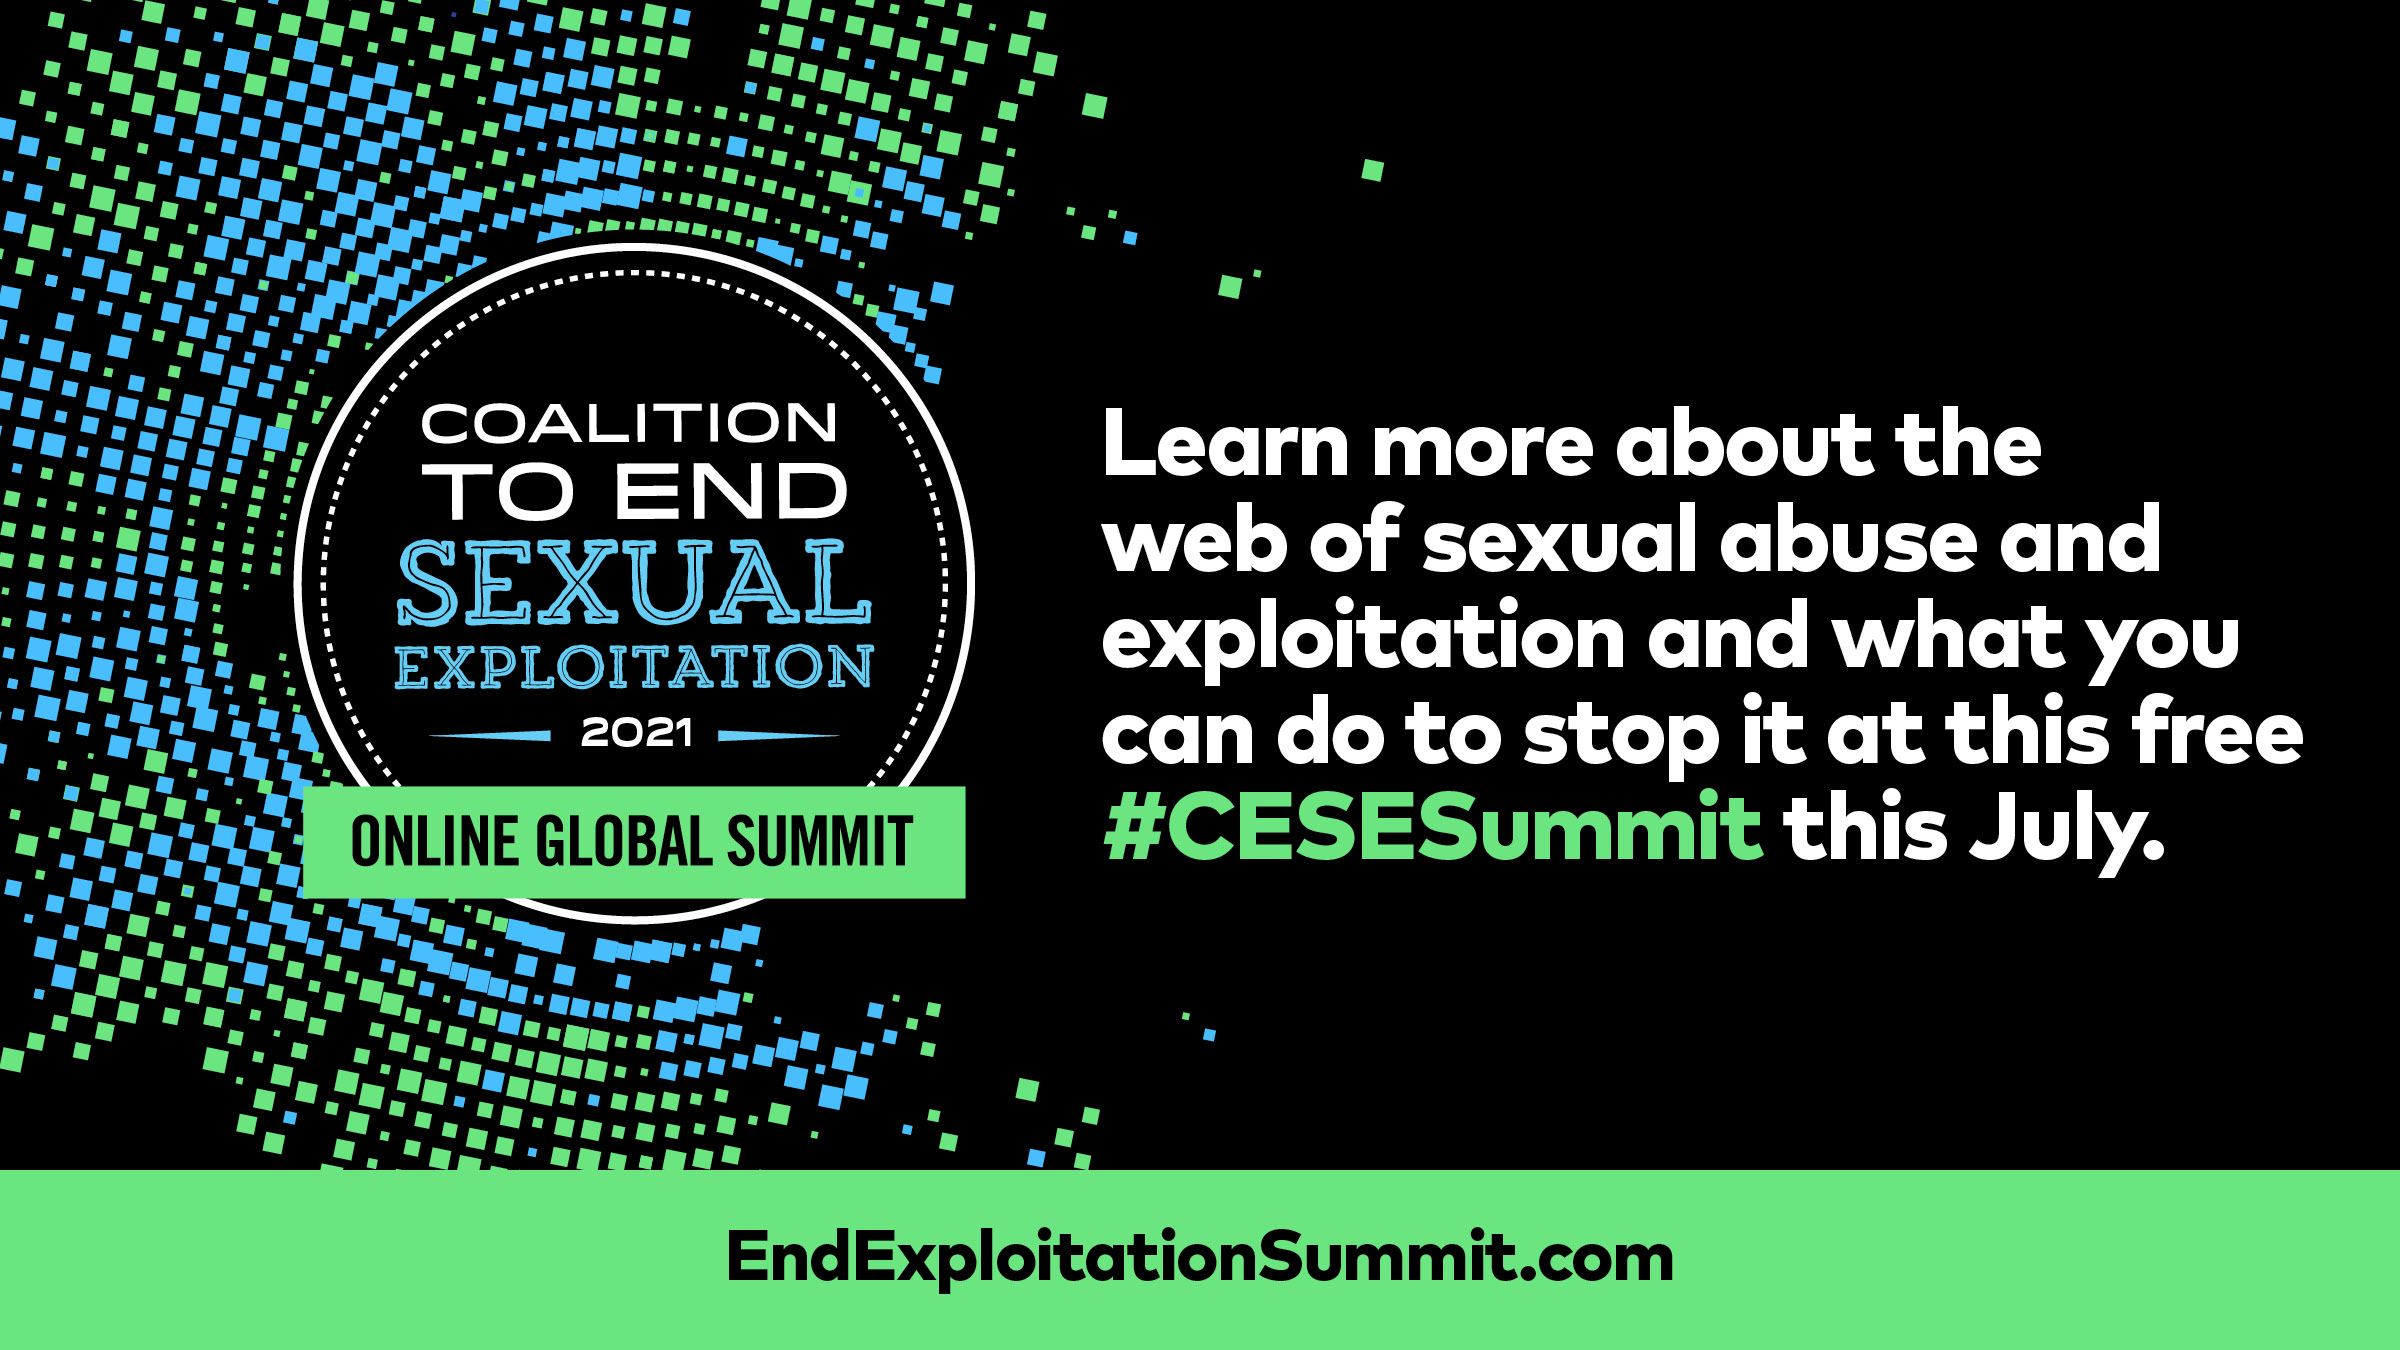 2021 CESE Summit: Learn more about the web of sexual abuse and exploitation and what you can do to stop it at this free #CESESummit in July 2021